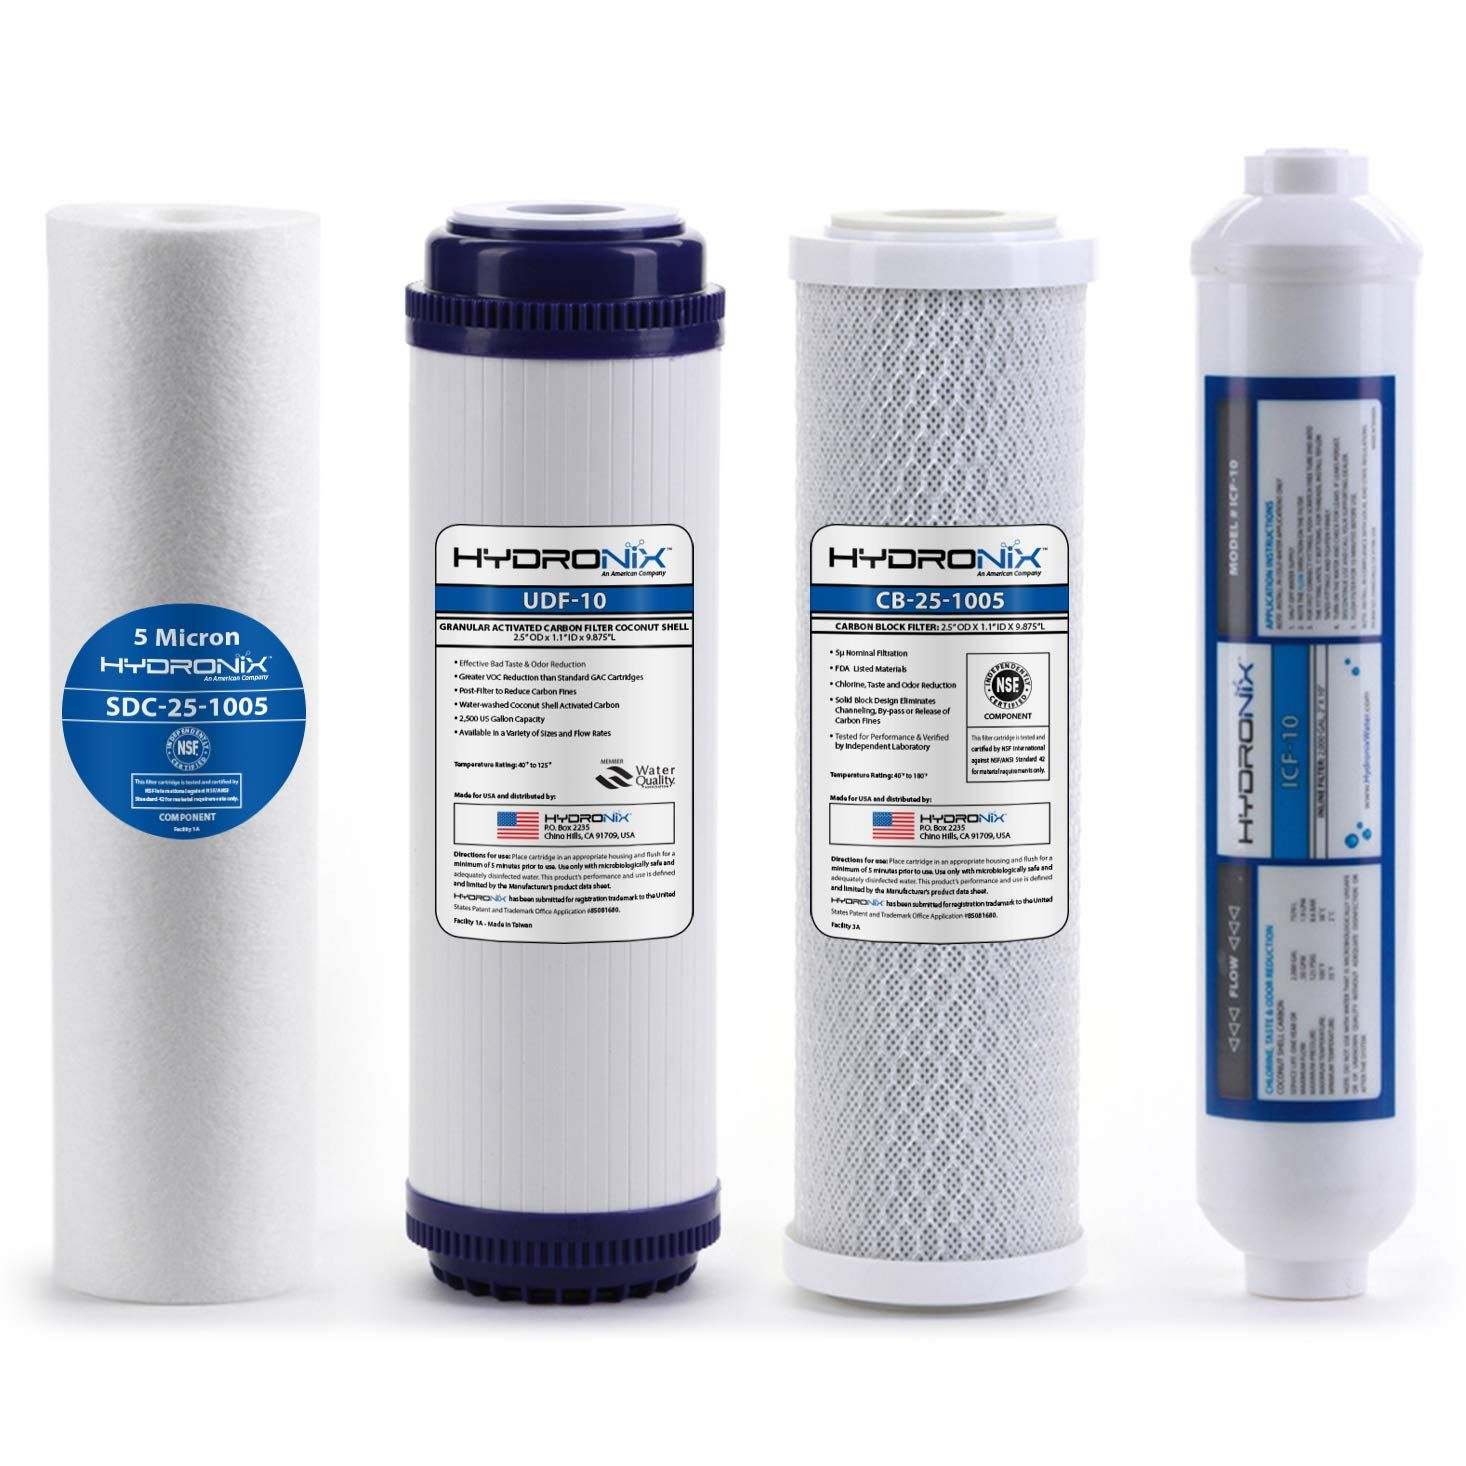 Hydronix Hx Ro 4pk 6 Stage 4pc Reverse Osmosis Ro Water Filter Cartridges Pre Reverse Osmosis Water Filter Cartridges Osmosis